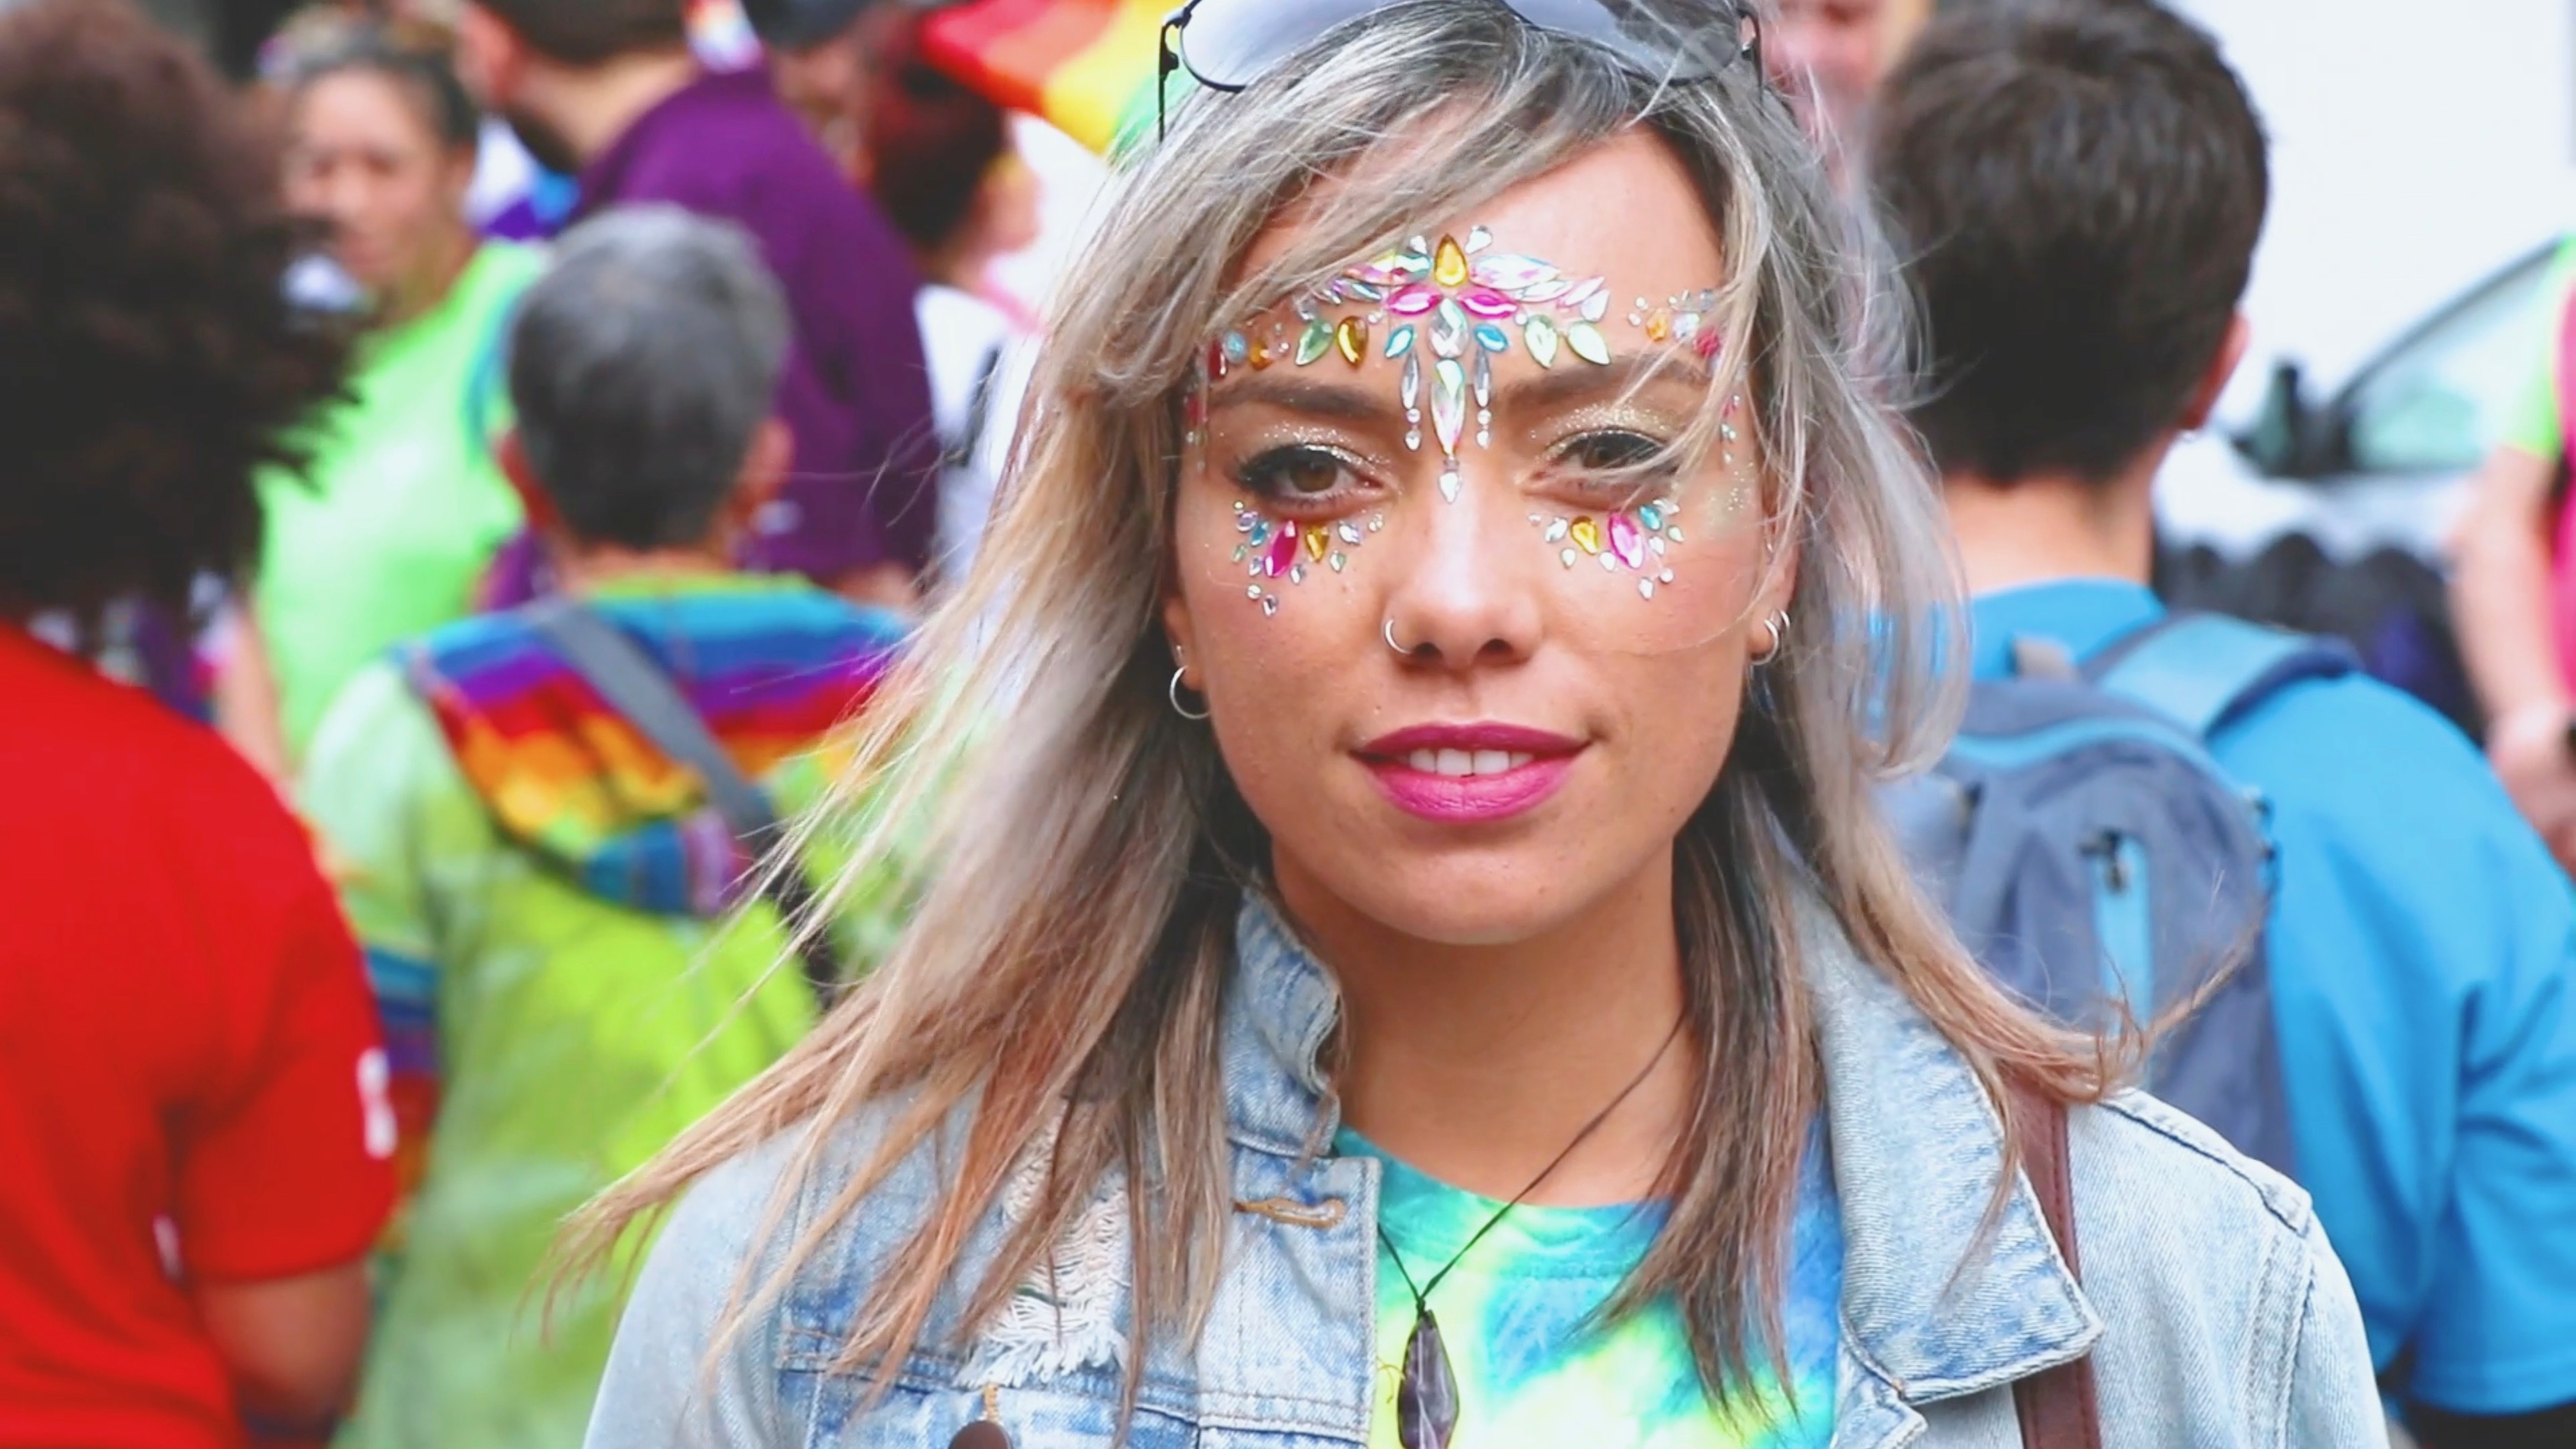 Woman wearing face paint at Pride Parade.